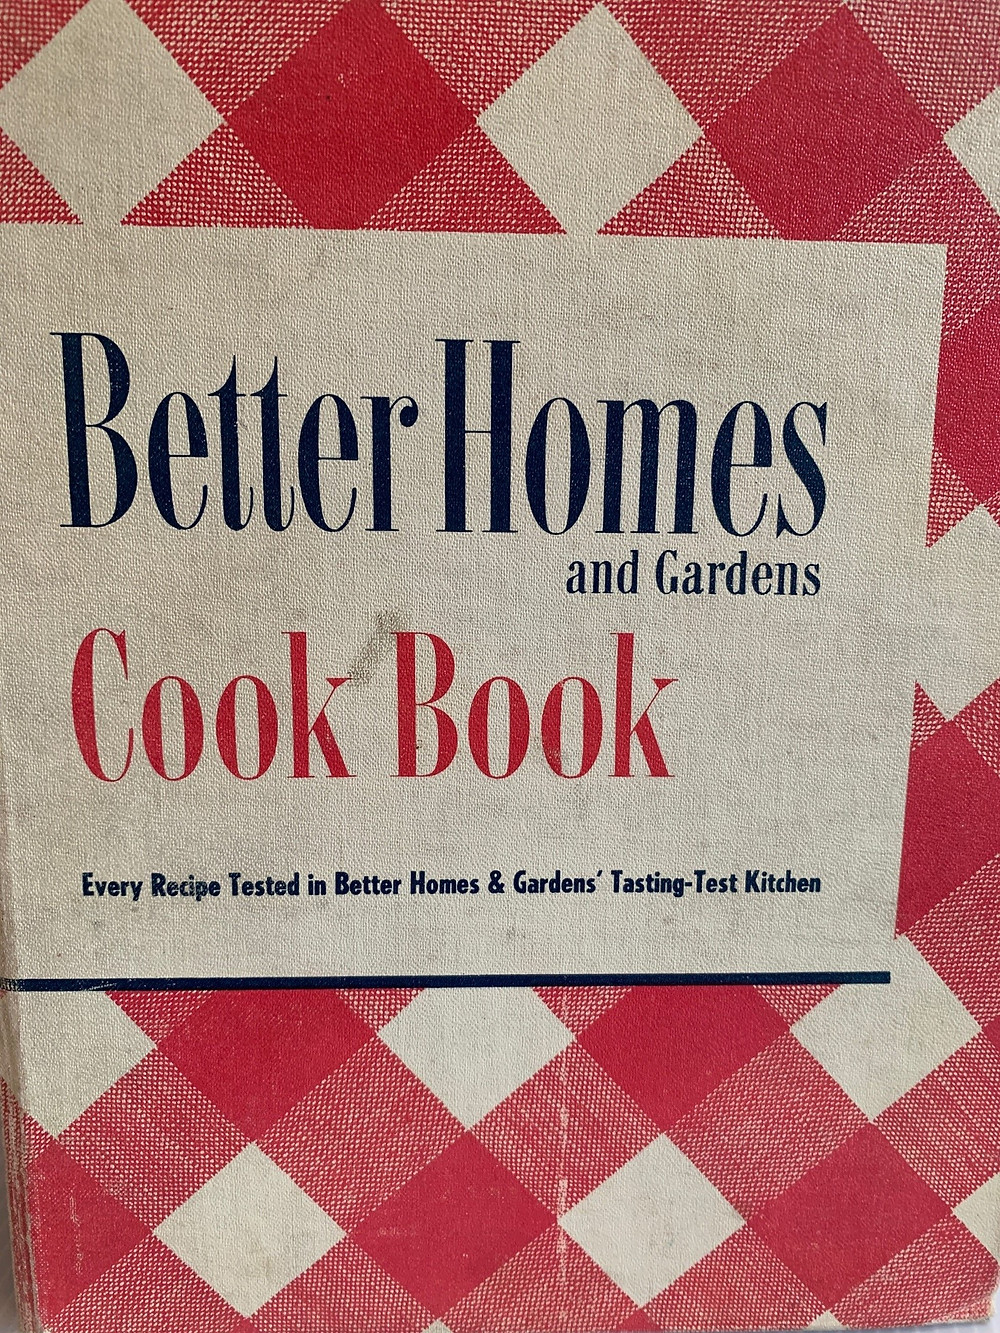 1946 Edition Better Homes and Gardens Cook Book